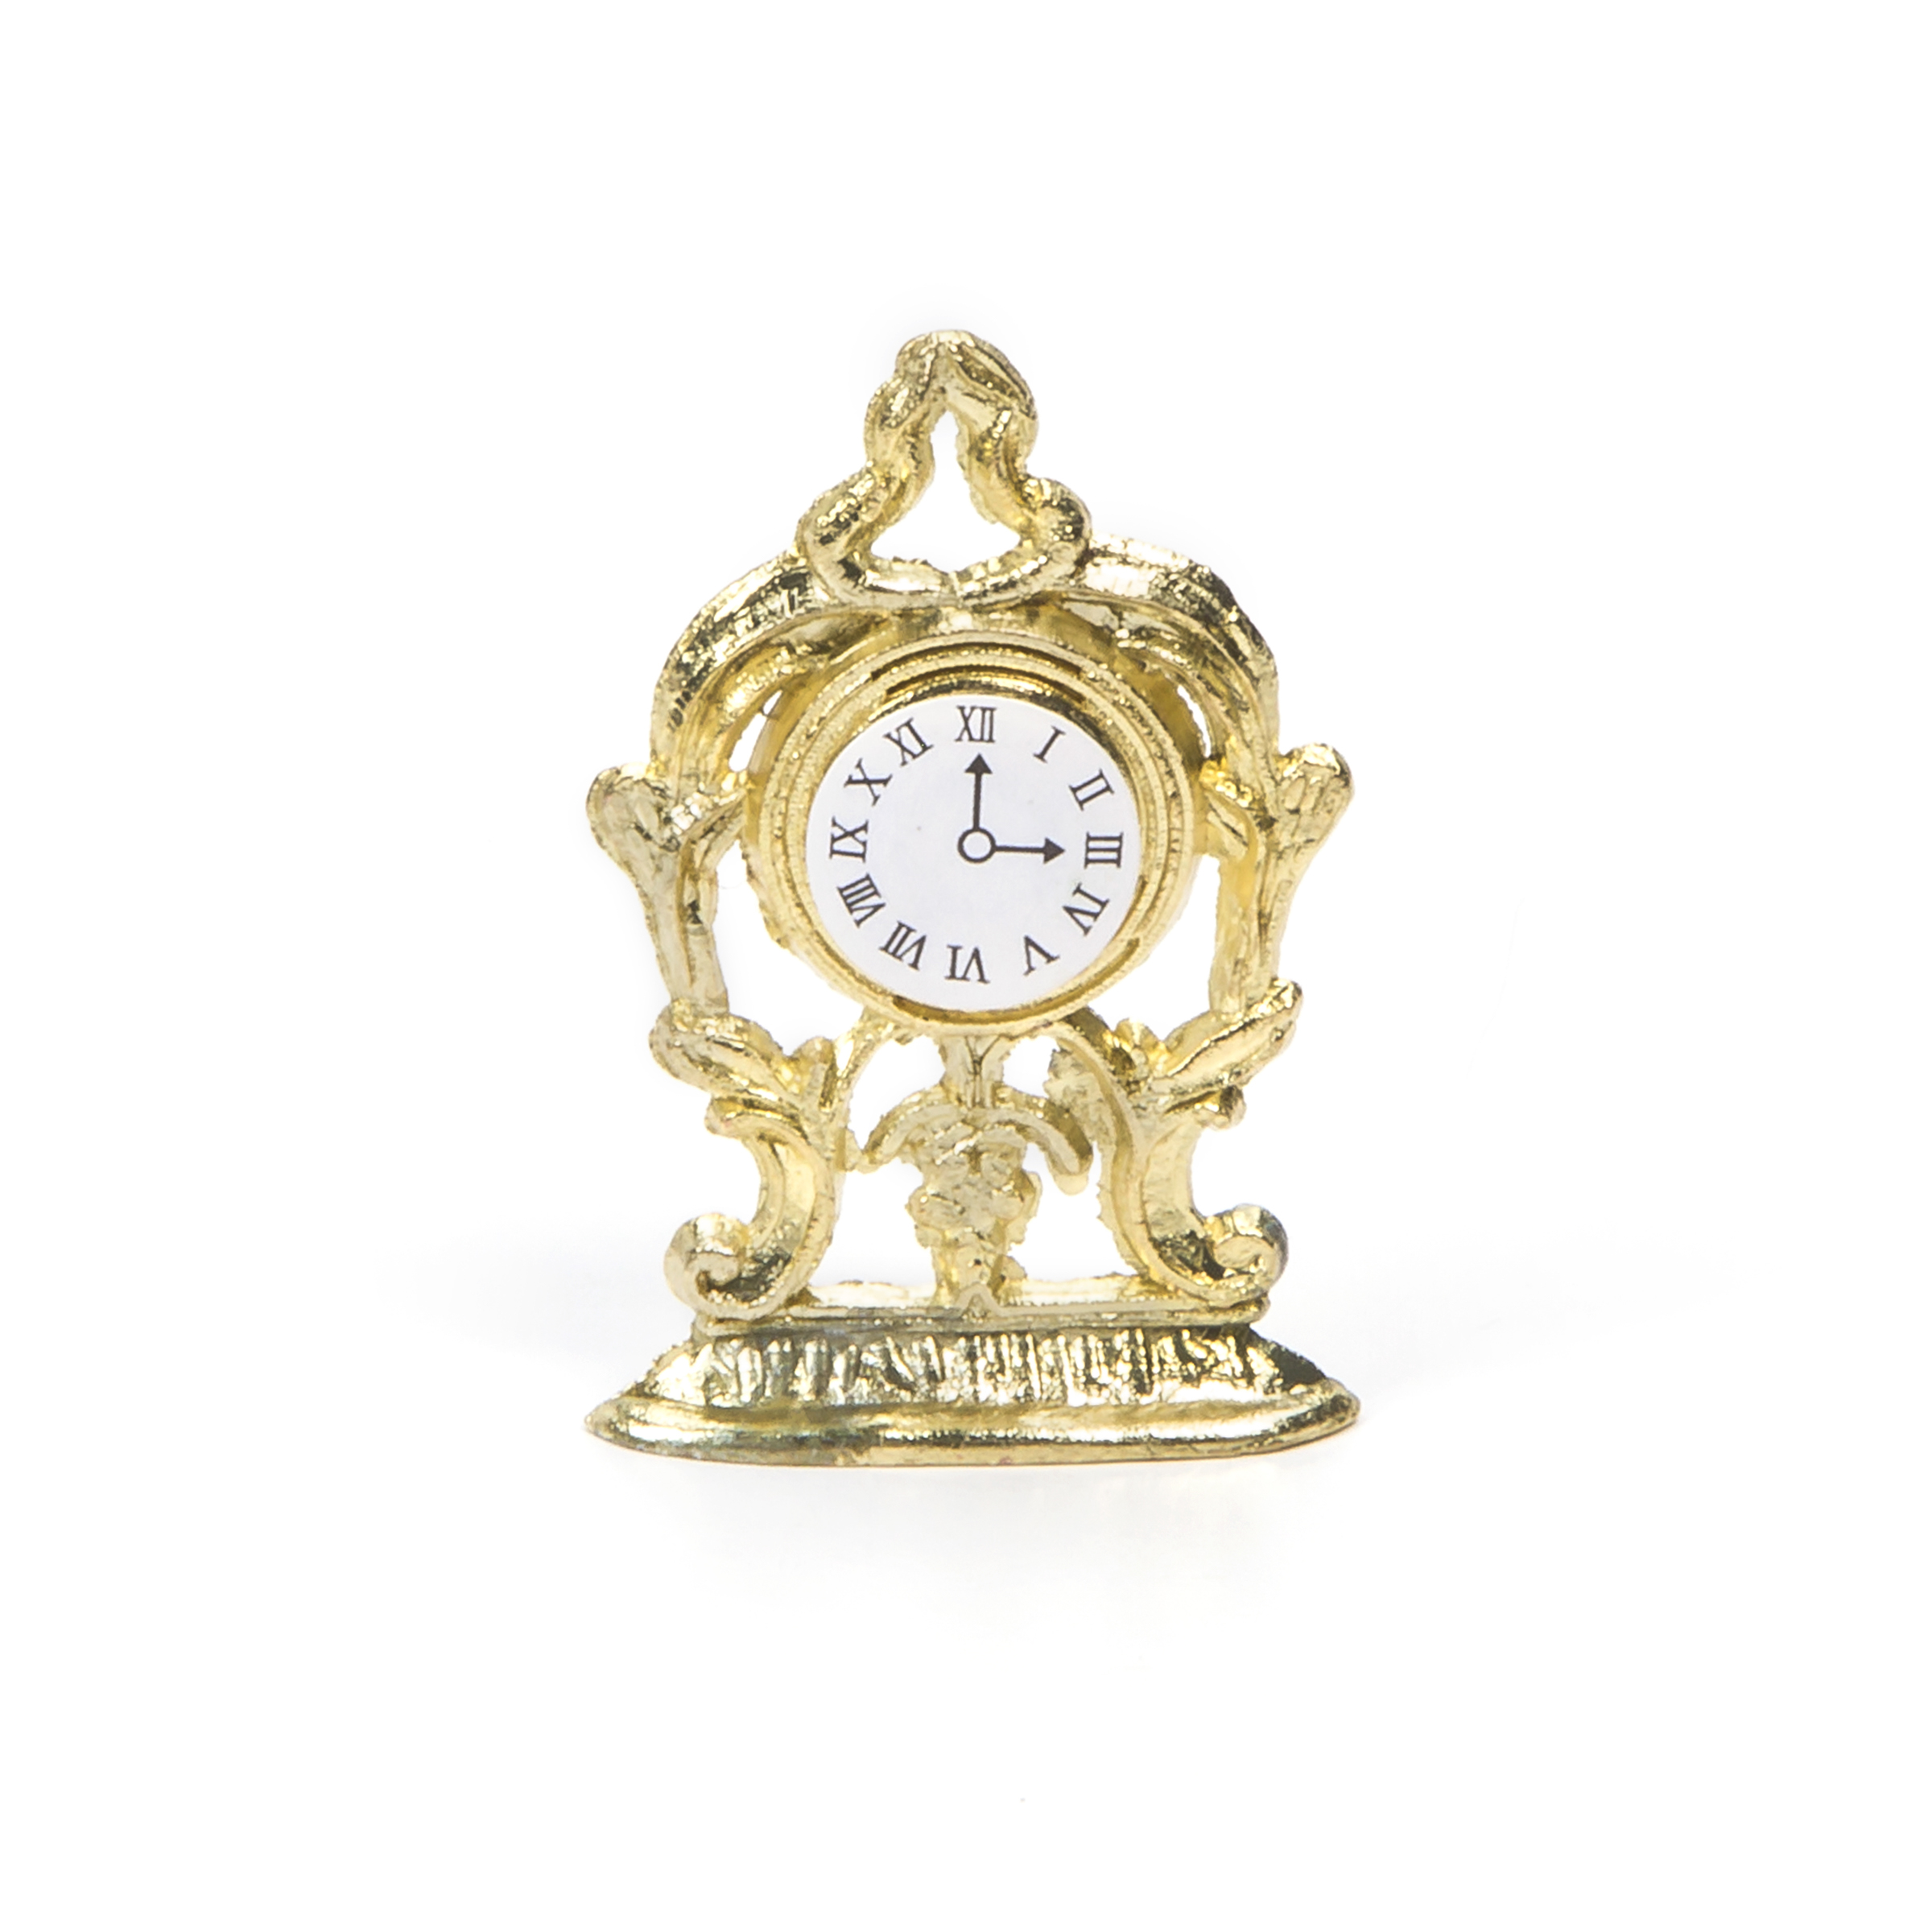 Darice Timeless Minis Mantel Clock Gold 0.875 X 1.375 inches